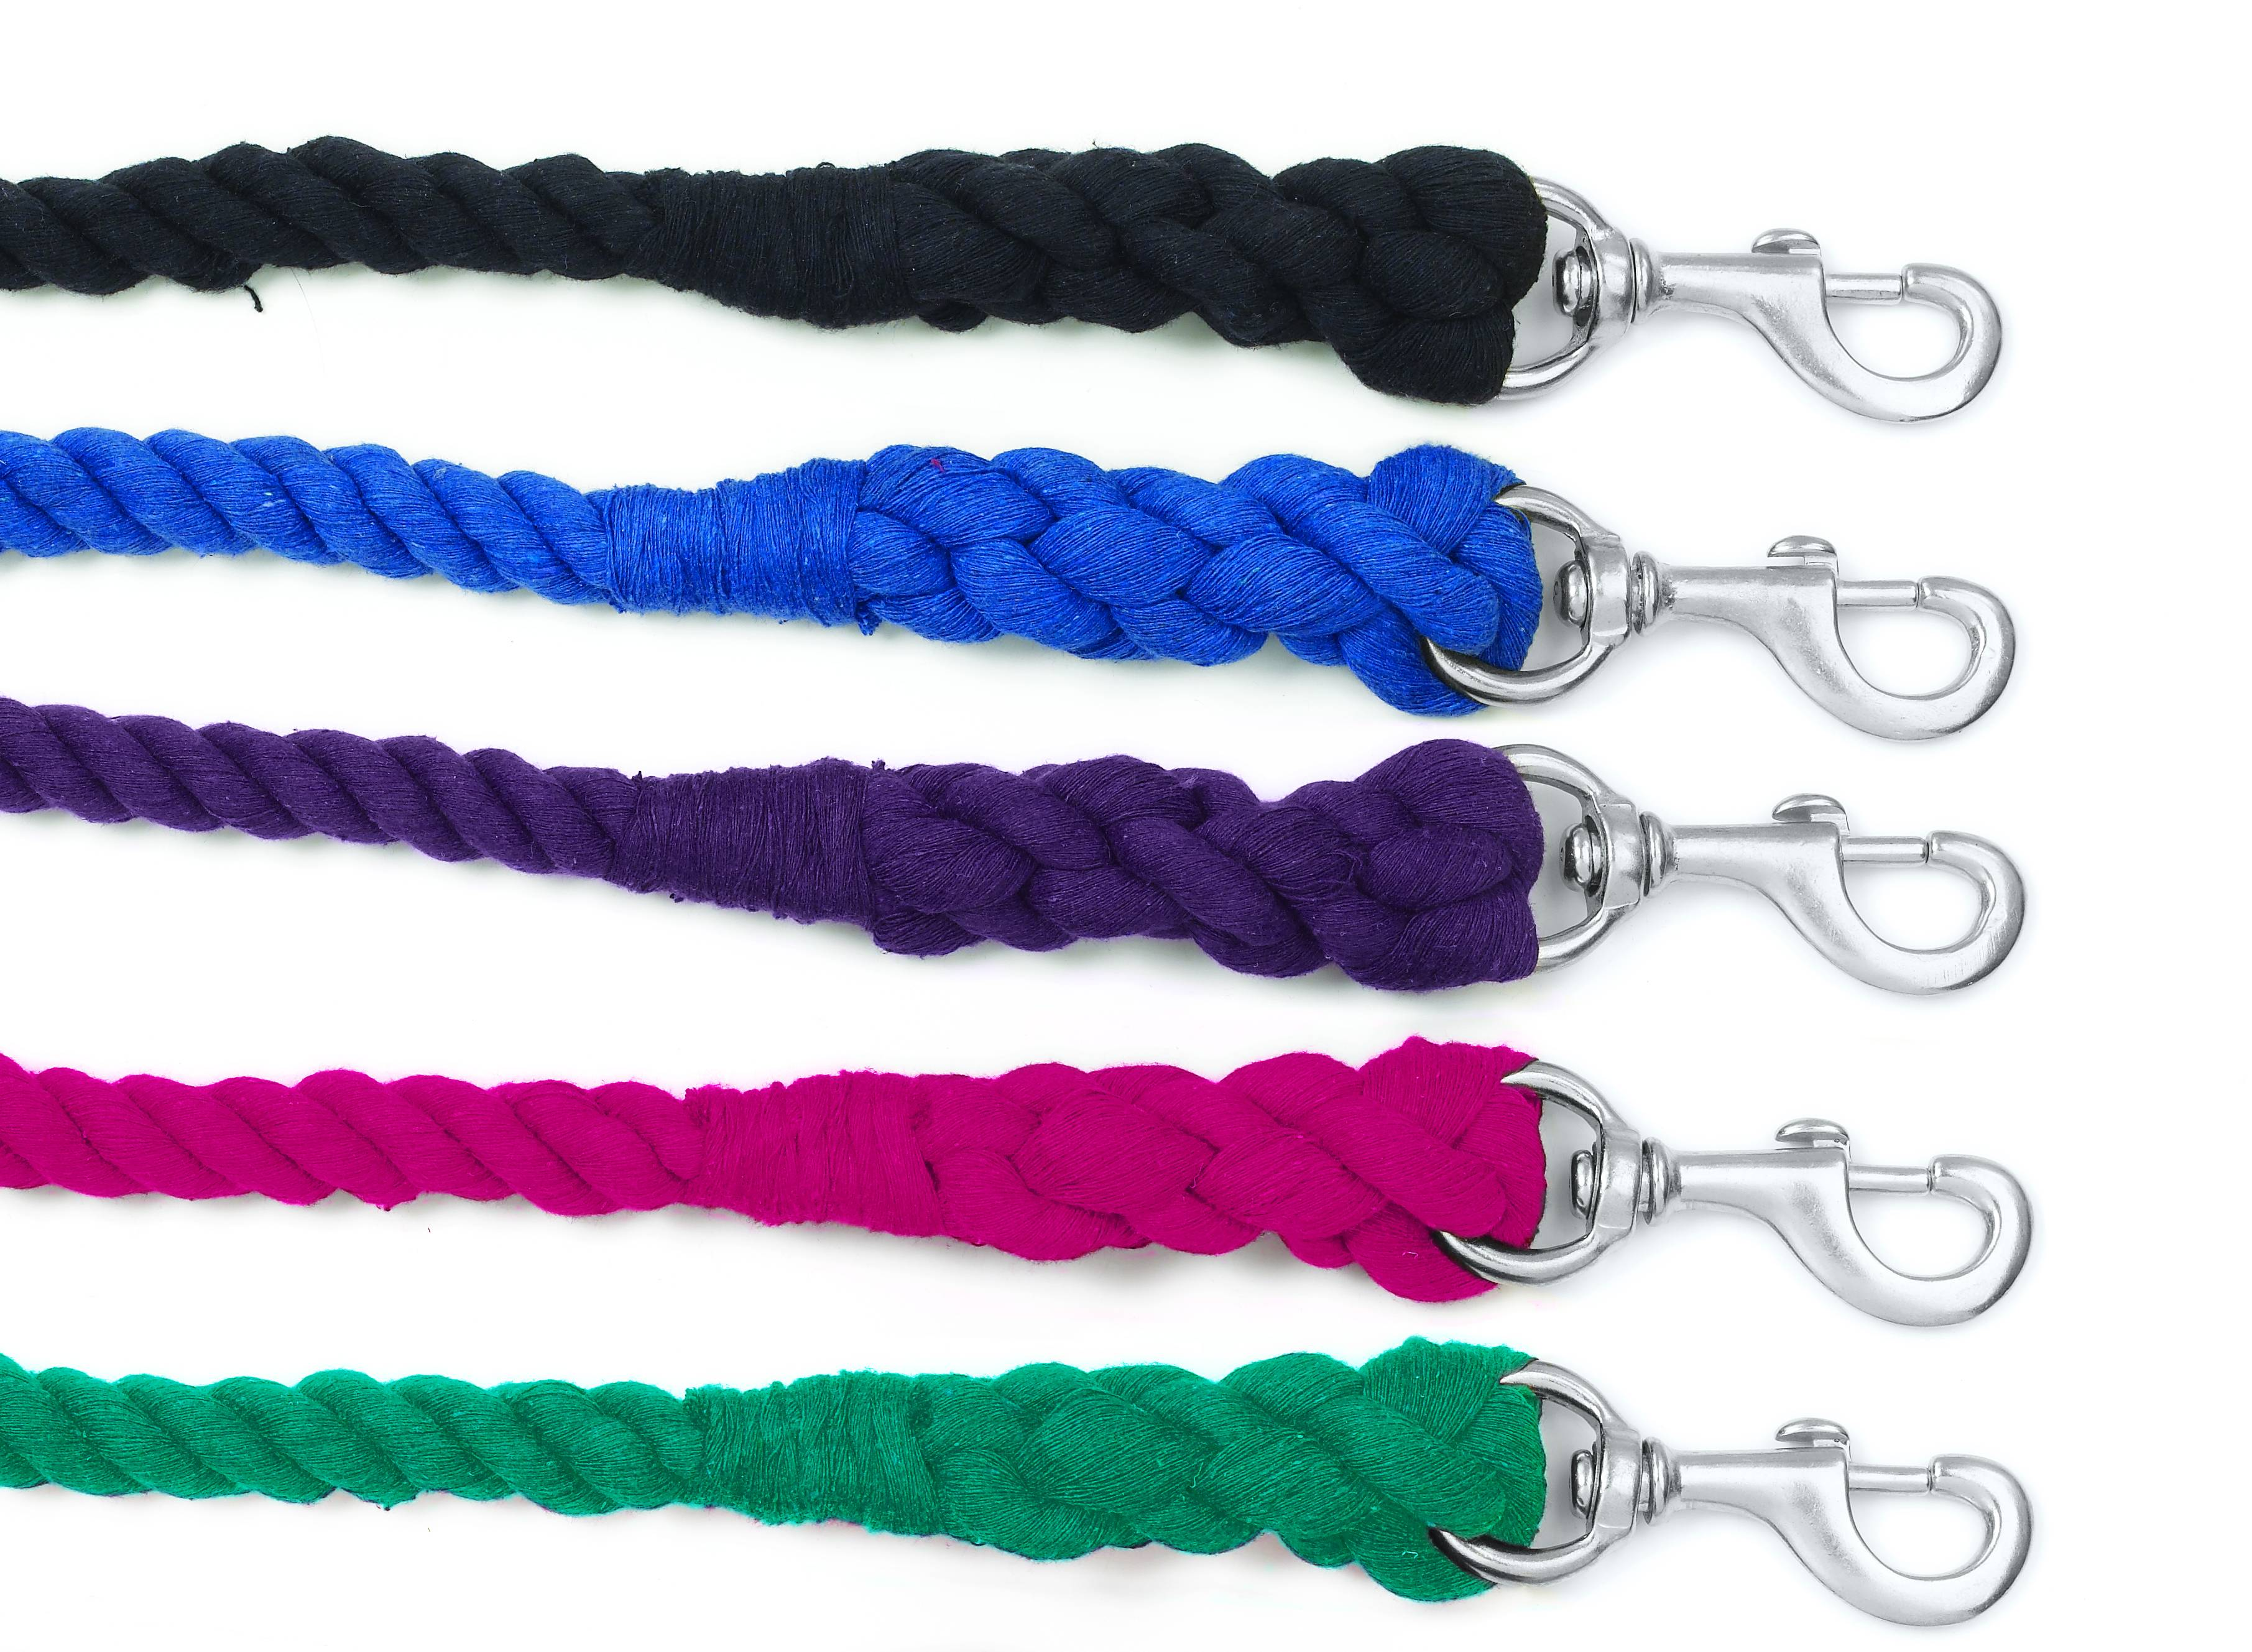 Equi-Essentials 2-Ply Cotton Lead with Chrome Plated Snap